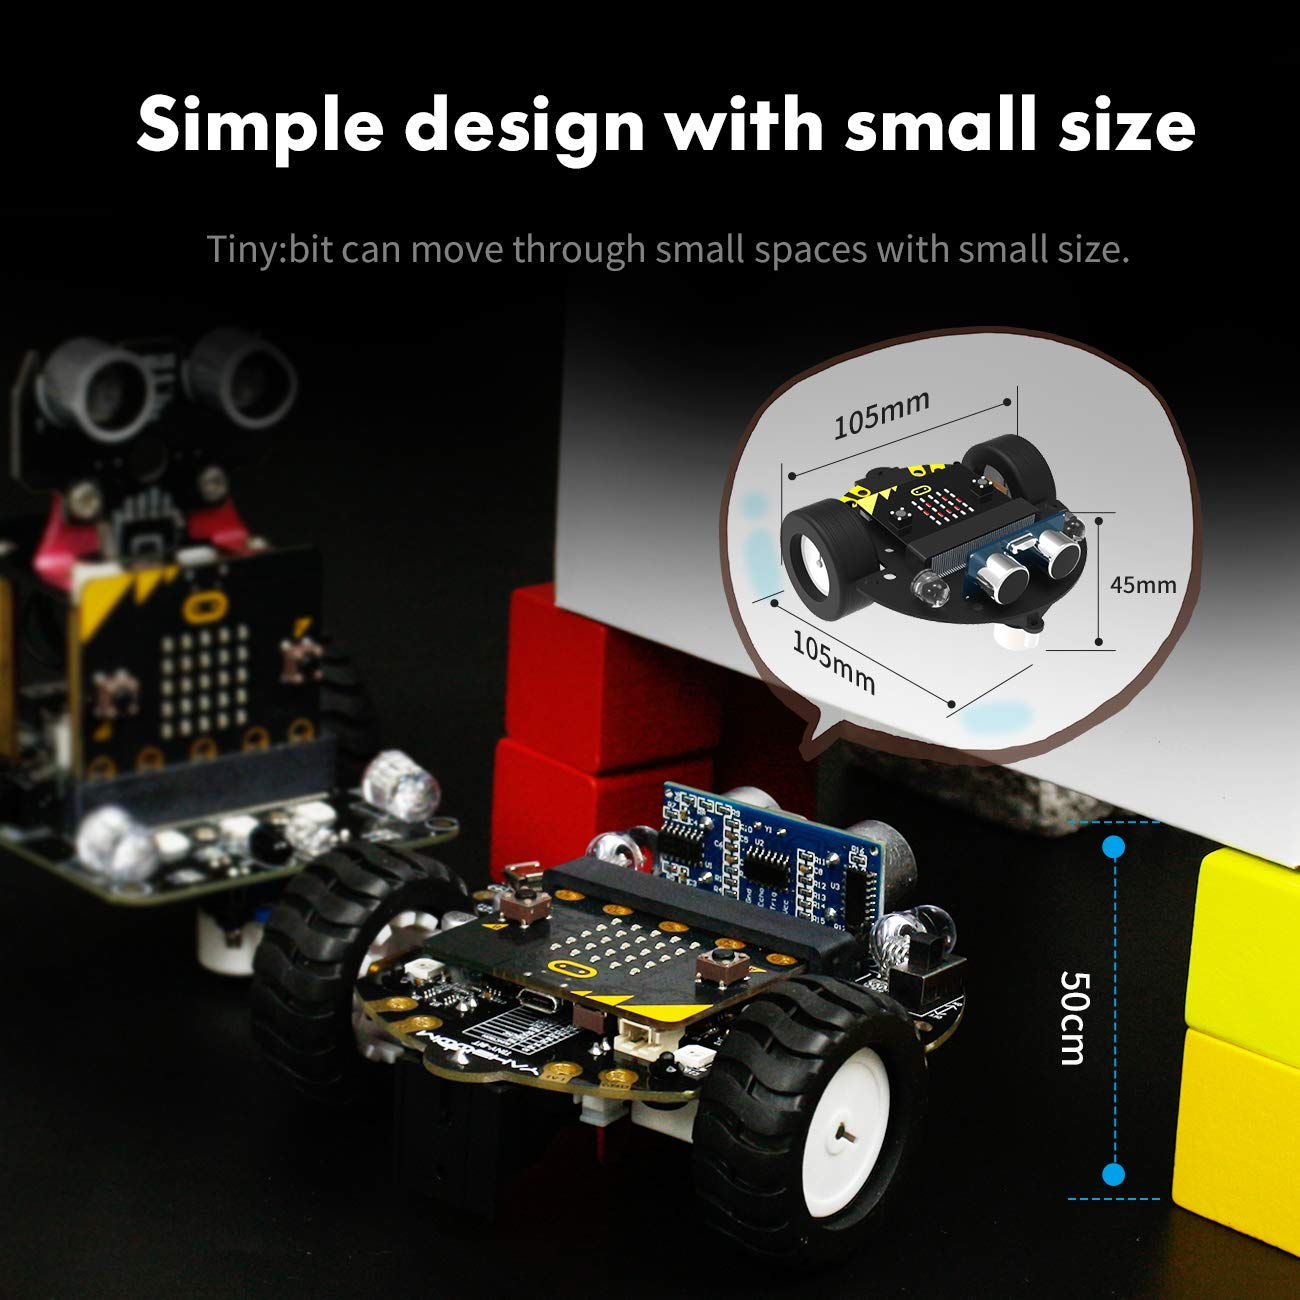 Yahboom Robot Kit for Micro:bit to Learn Programming STEM Education Toy Car for Kids 8+ (Without Micro:bit) by Yahboom (Image #2)